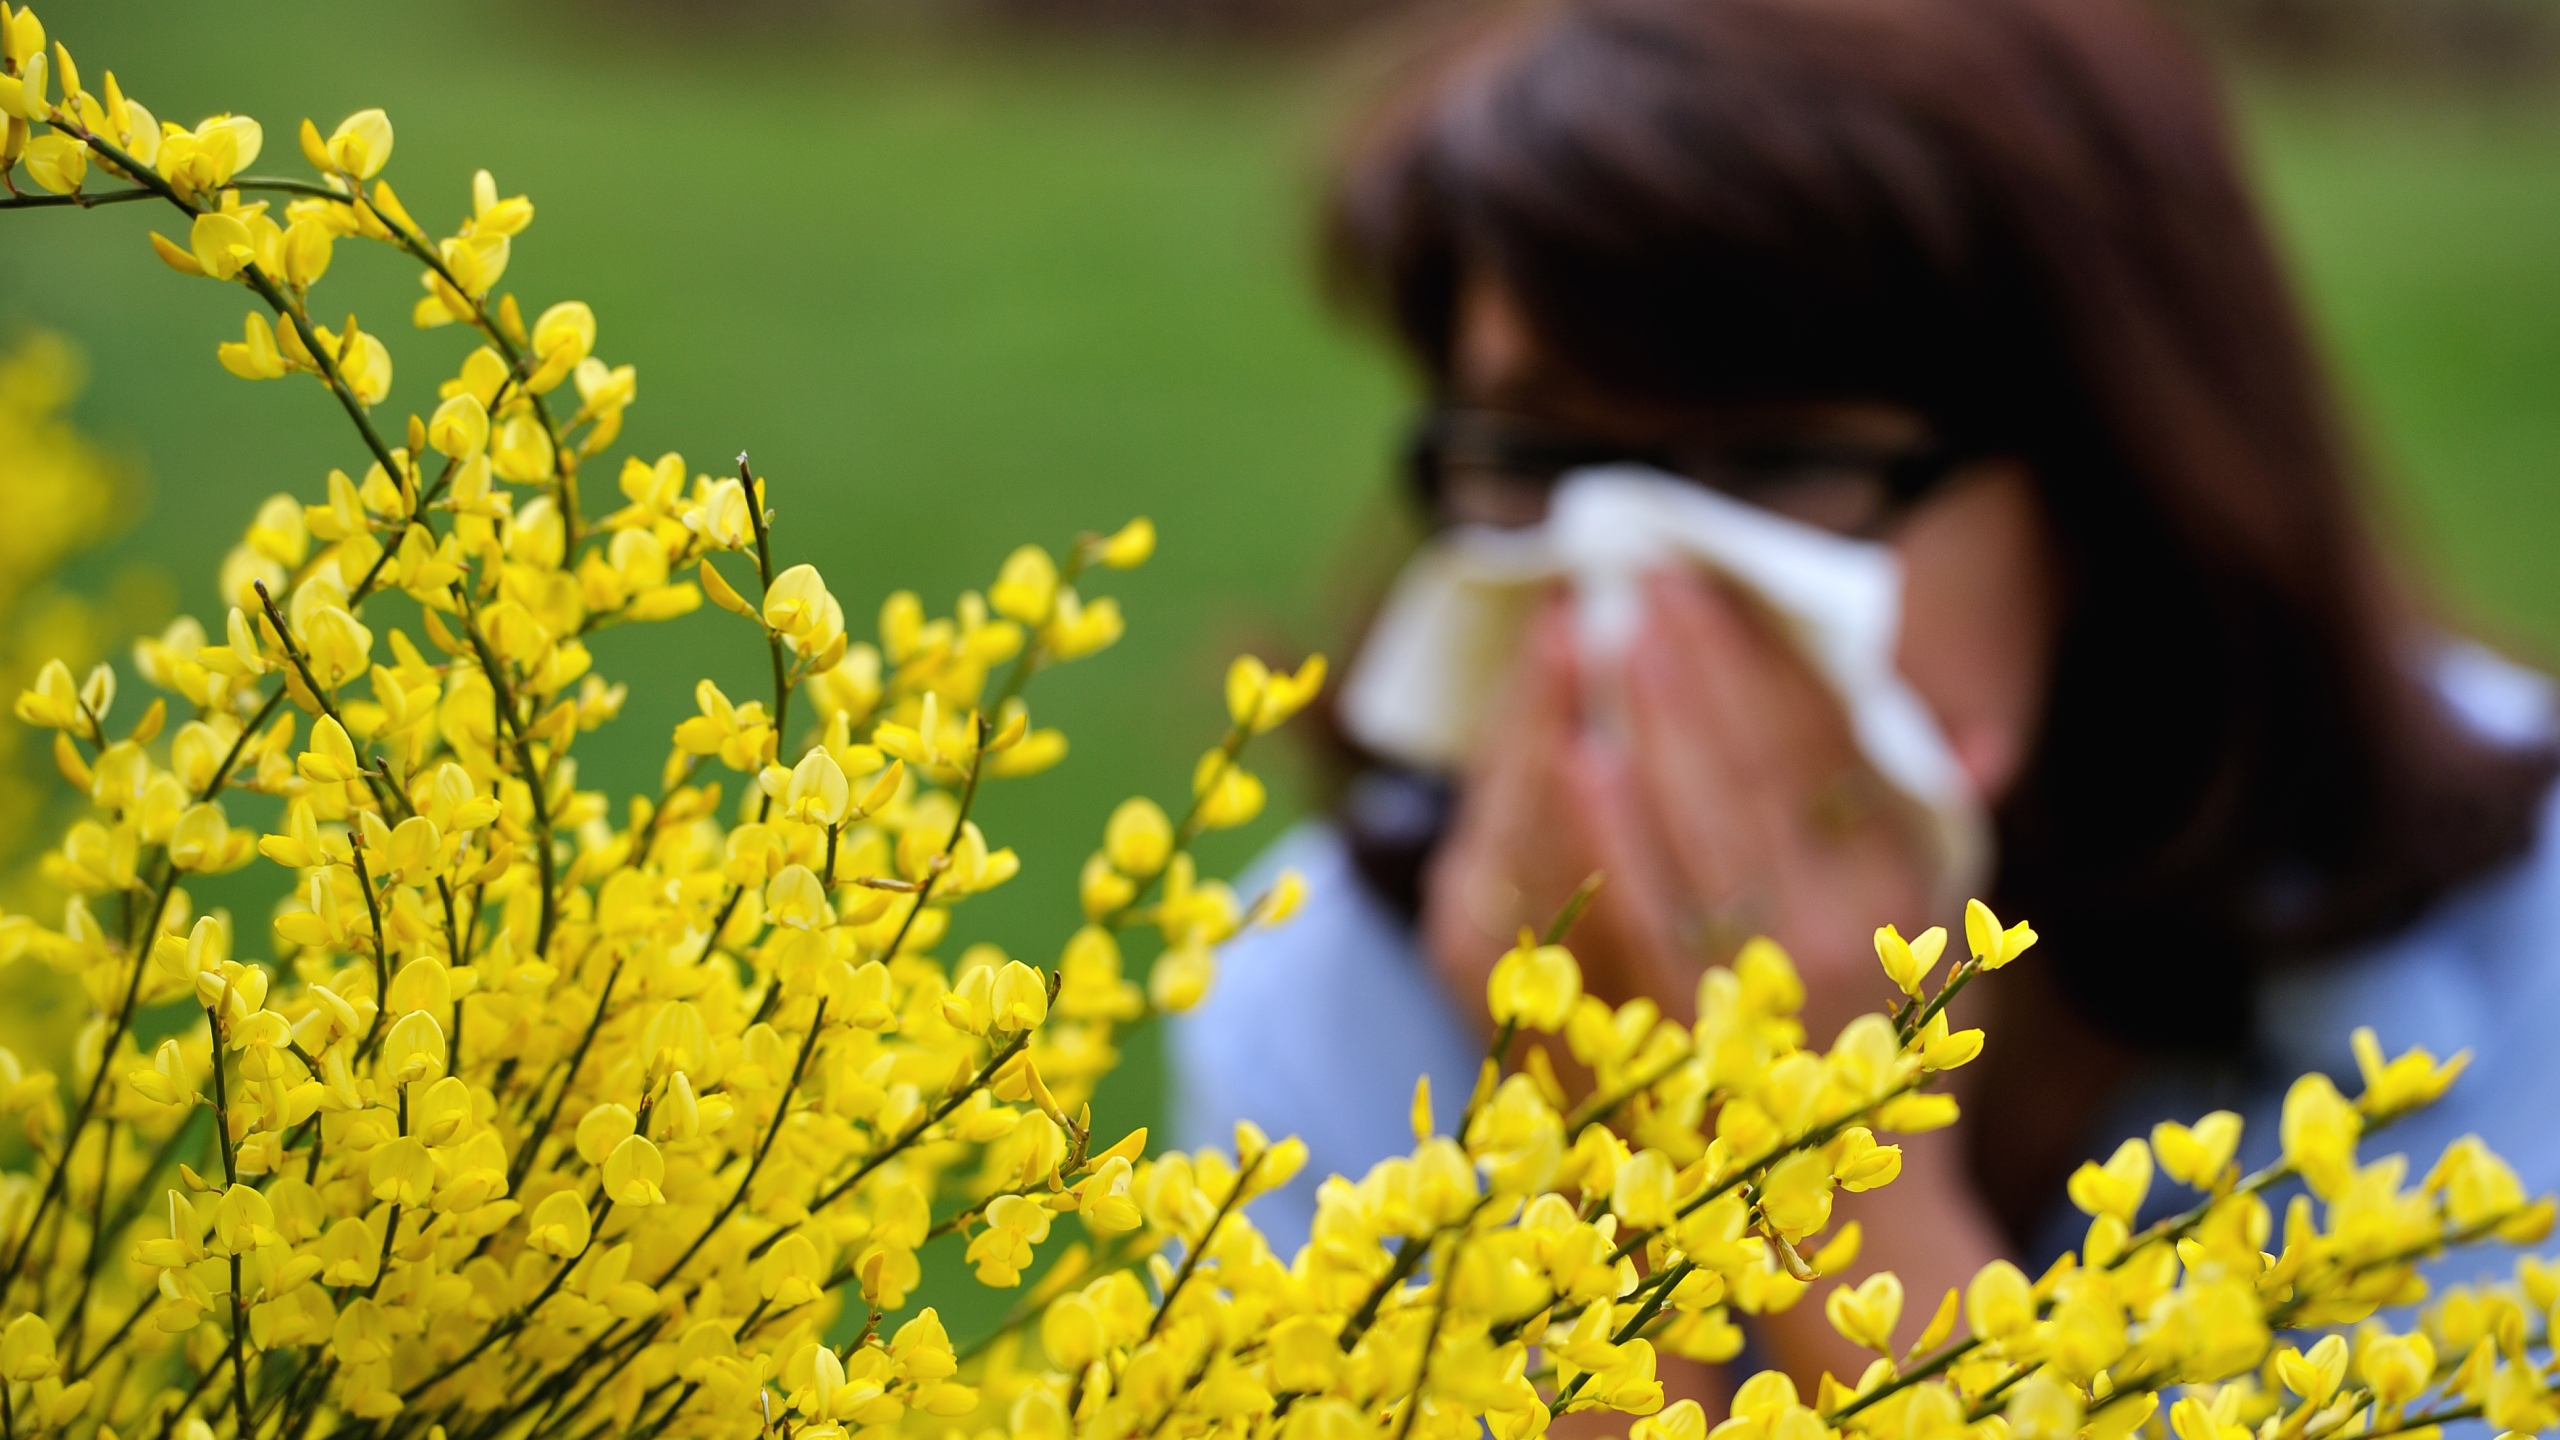 A woman blows her nose in Godewaersvelde, northern France on May 18, 2013, as the return of pleasant weather marks the arrival of pollen. (PHILIPPE HUGUEN/AFP via Getty Images)